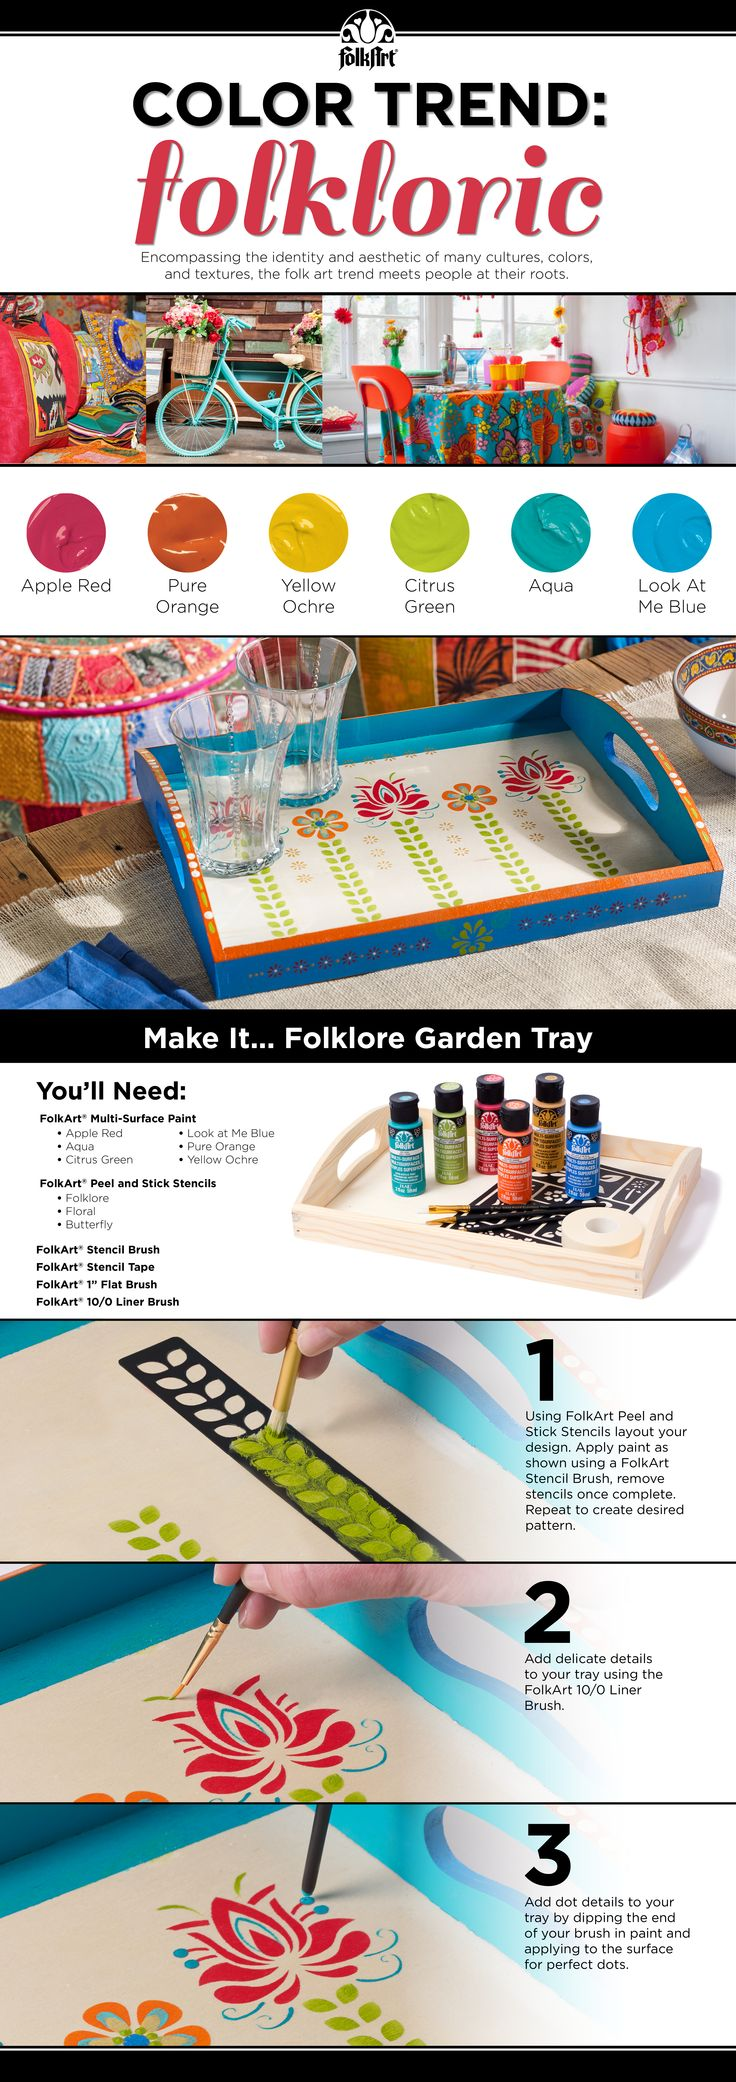 So fun! Love this globally-inspired and richly-hued color palette inspired by the #folkloric trend to #DIY this garden tray #folkart #colortrend #plaidcrafts